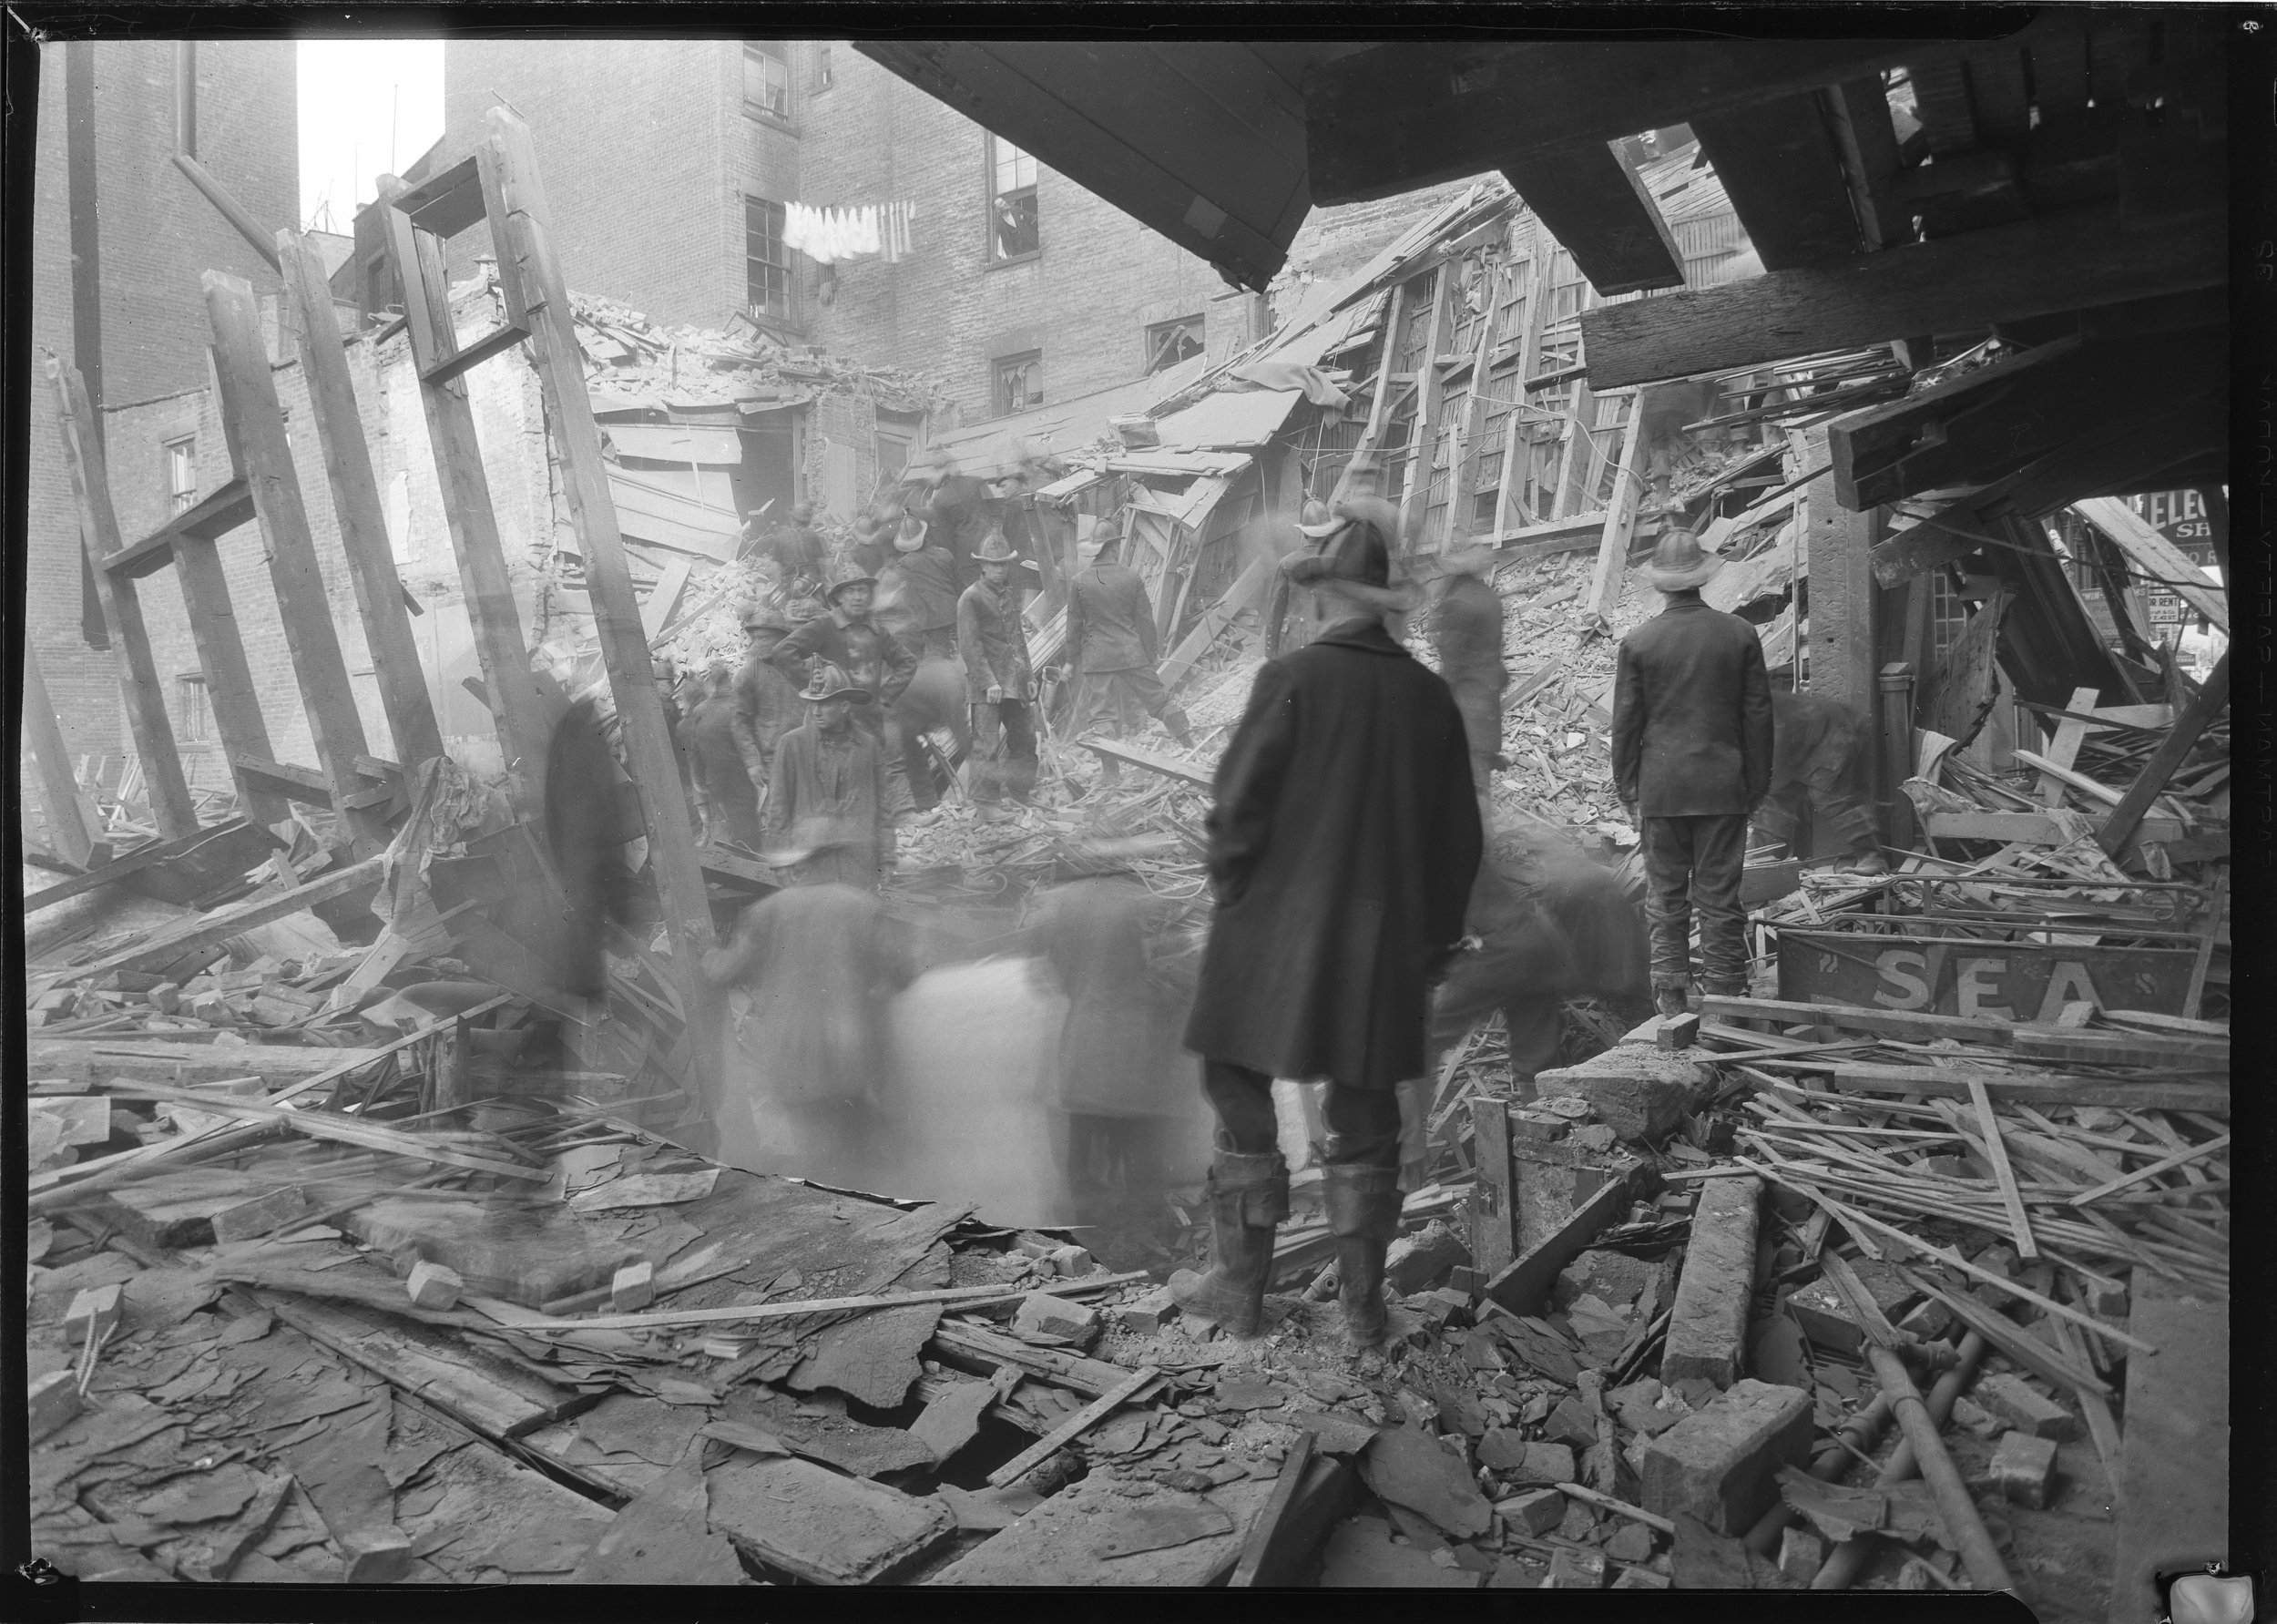 Building collapse, 15 Greenwich Ave., October 7, 1930